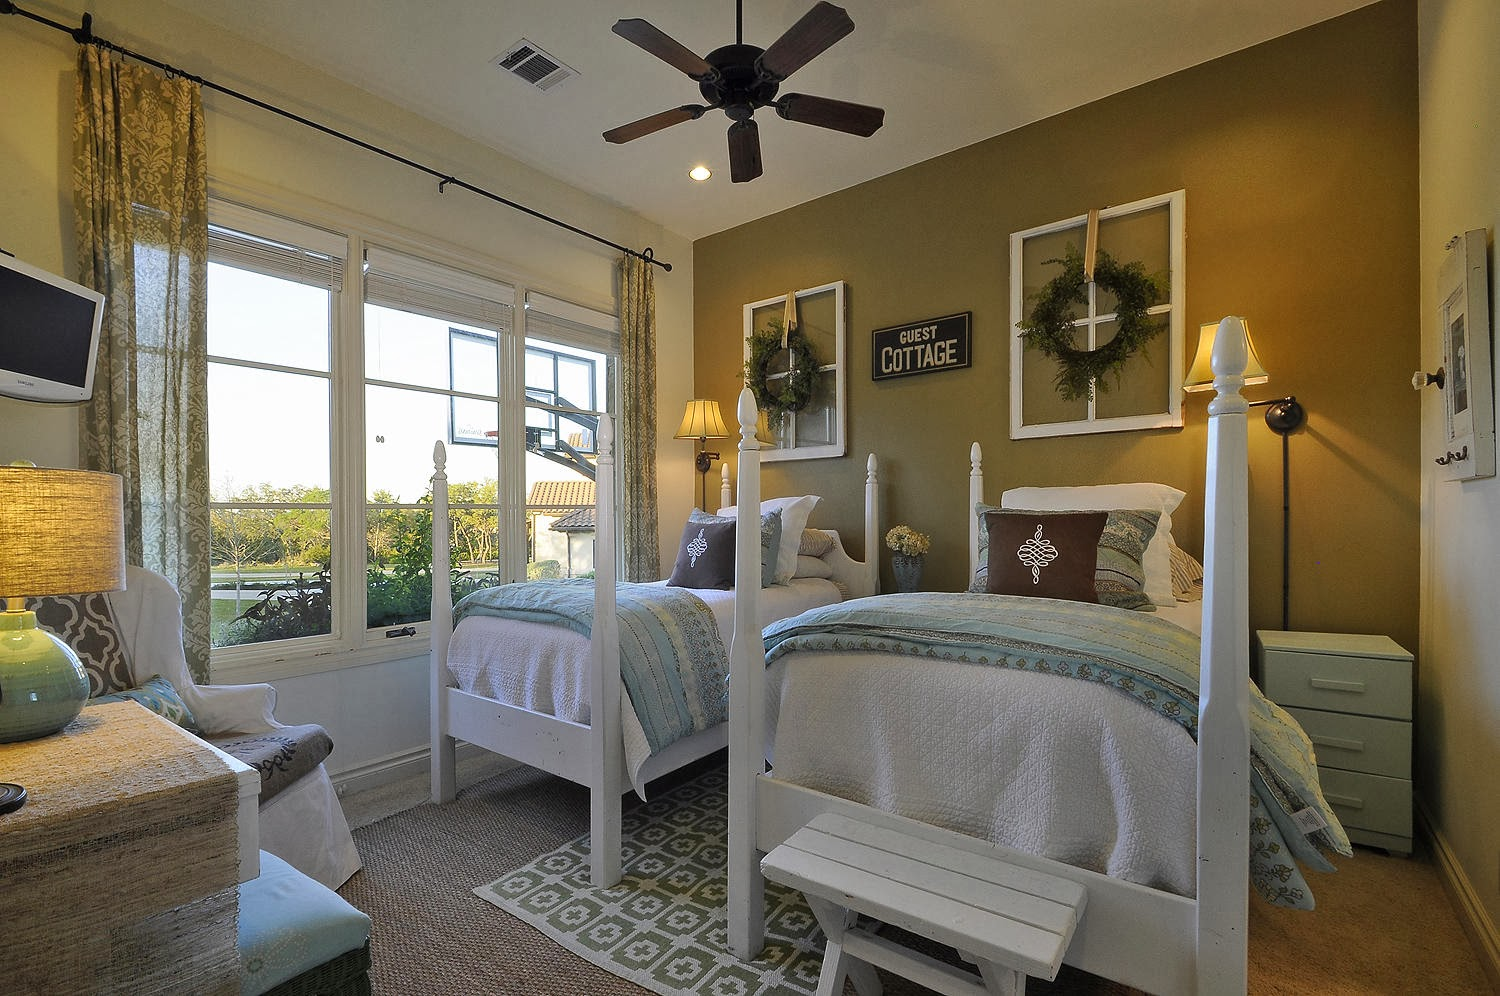 twin single beds for the guests title=